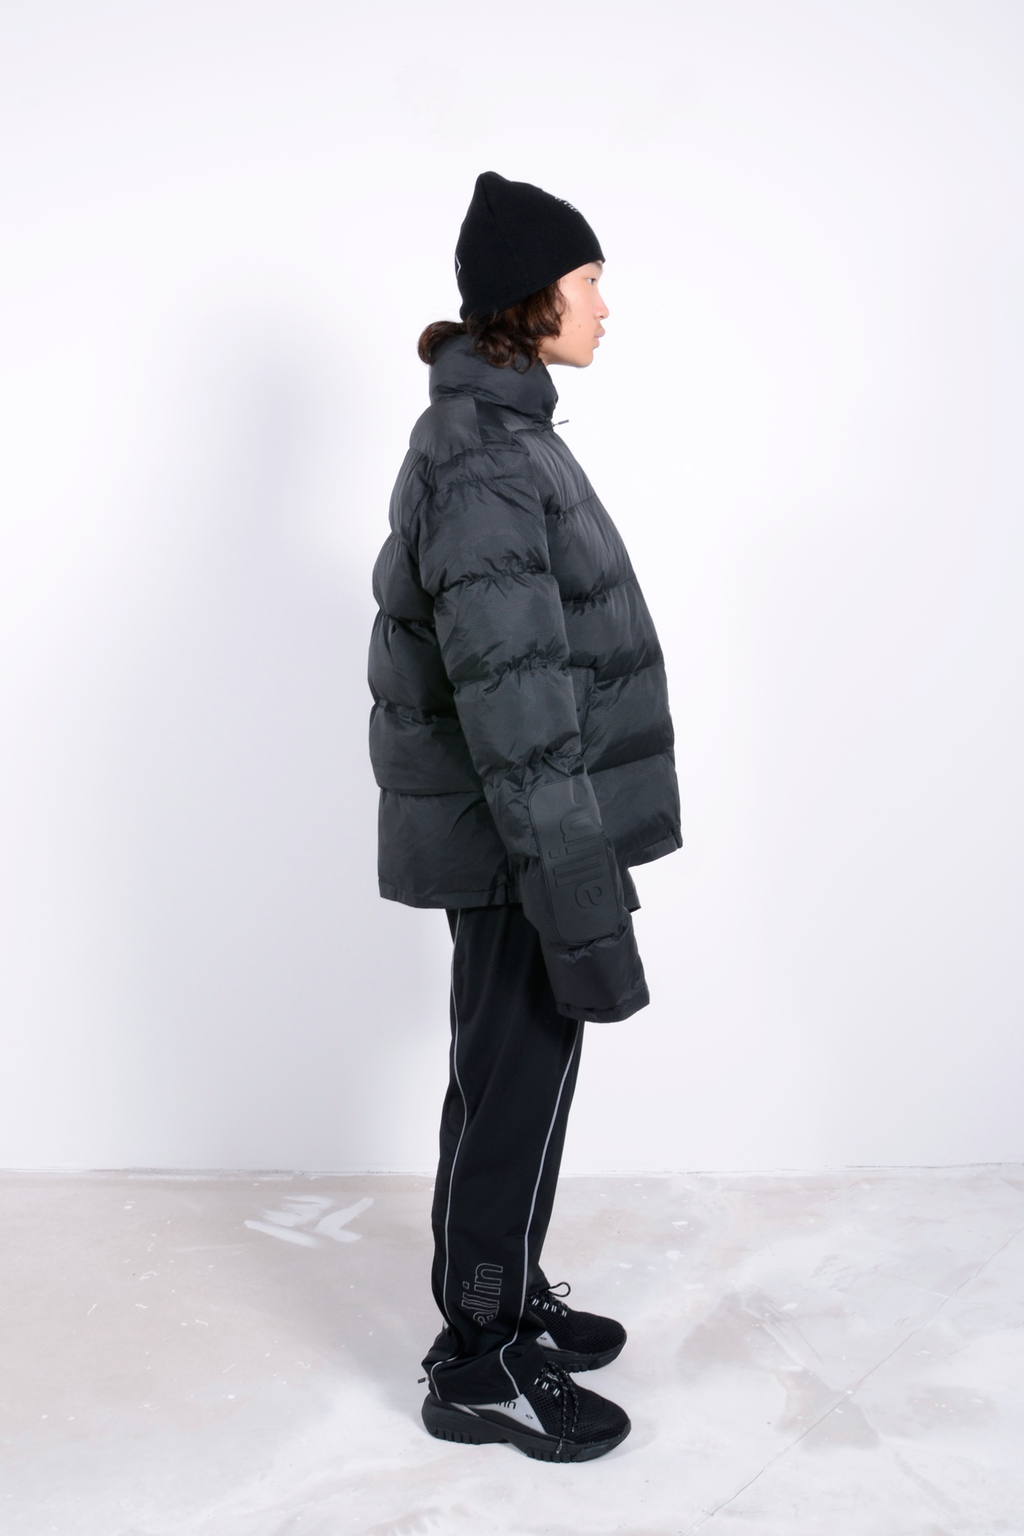 Puffy Winter Jacket 2 Black